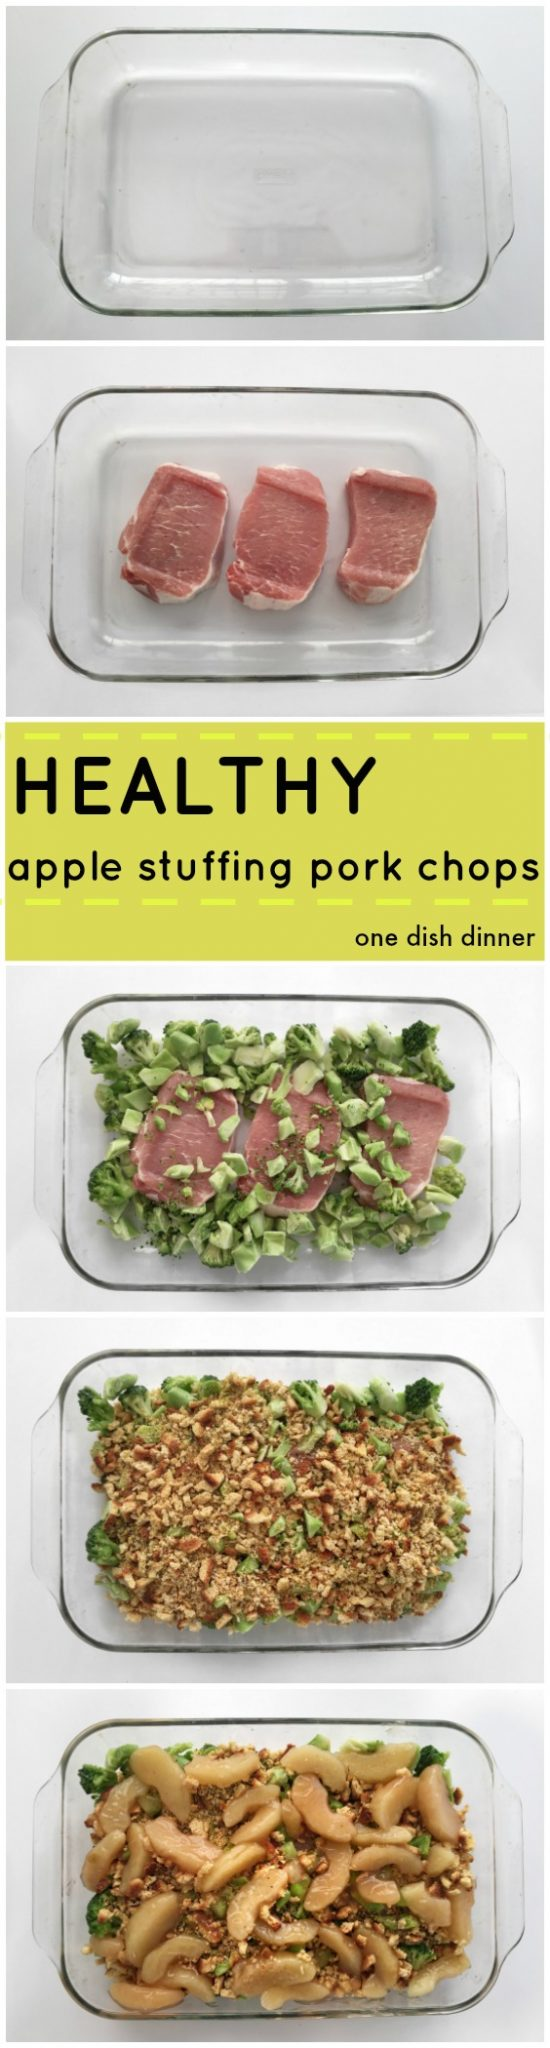 Easy One Dish Pork Chop Dinner - A Fast healthy dinner - pork chops with apple stuffin